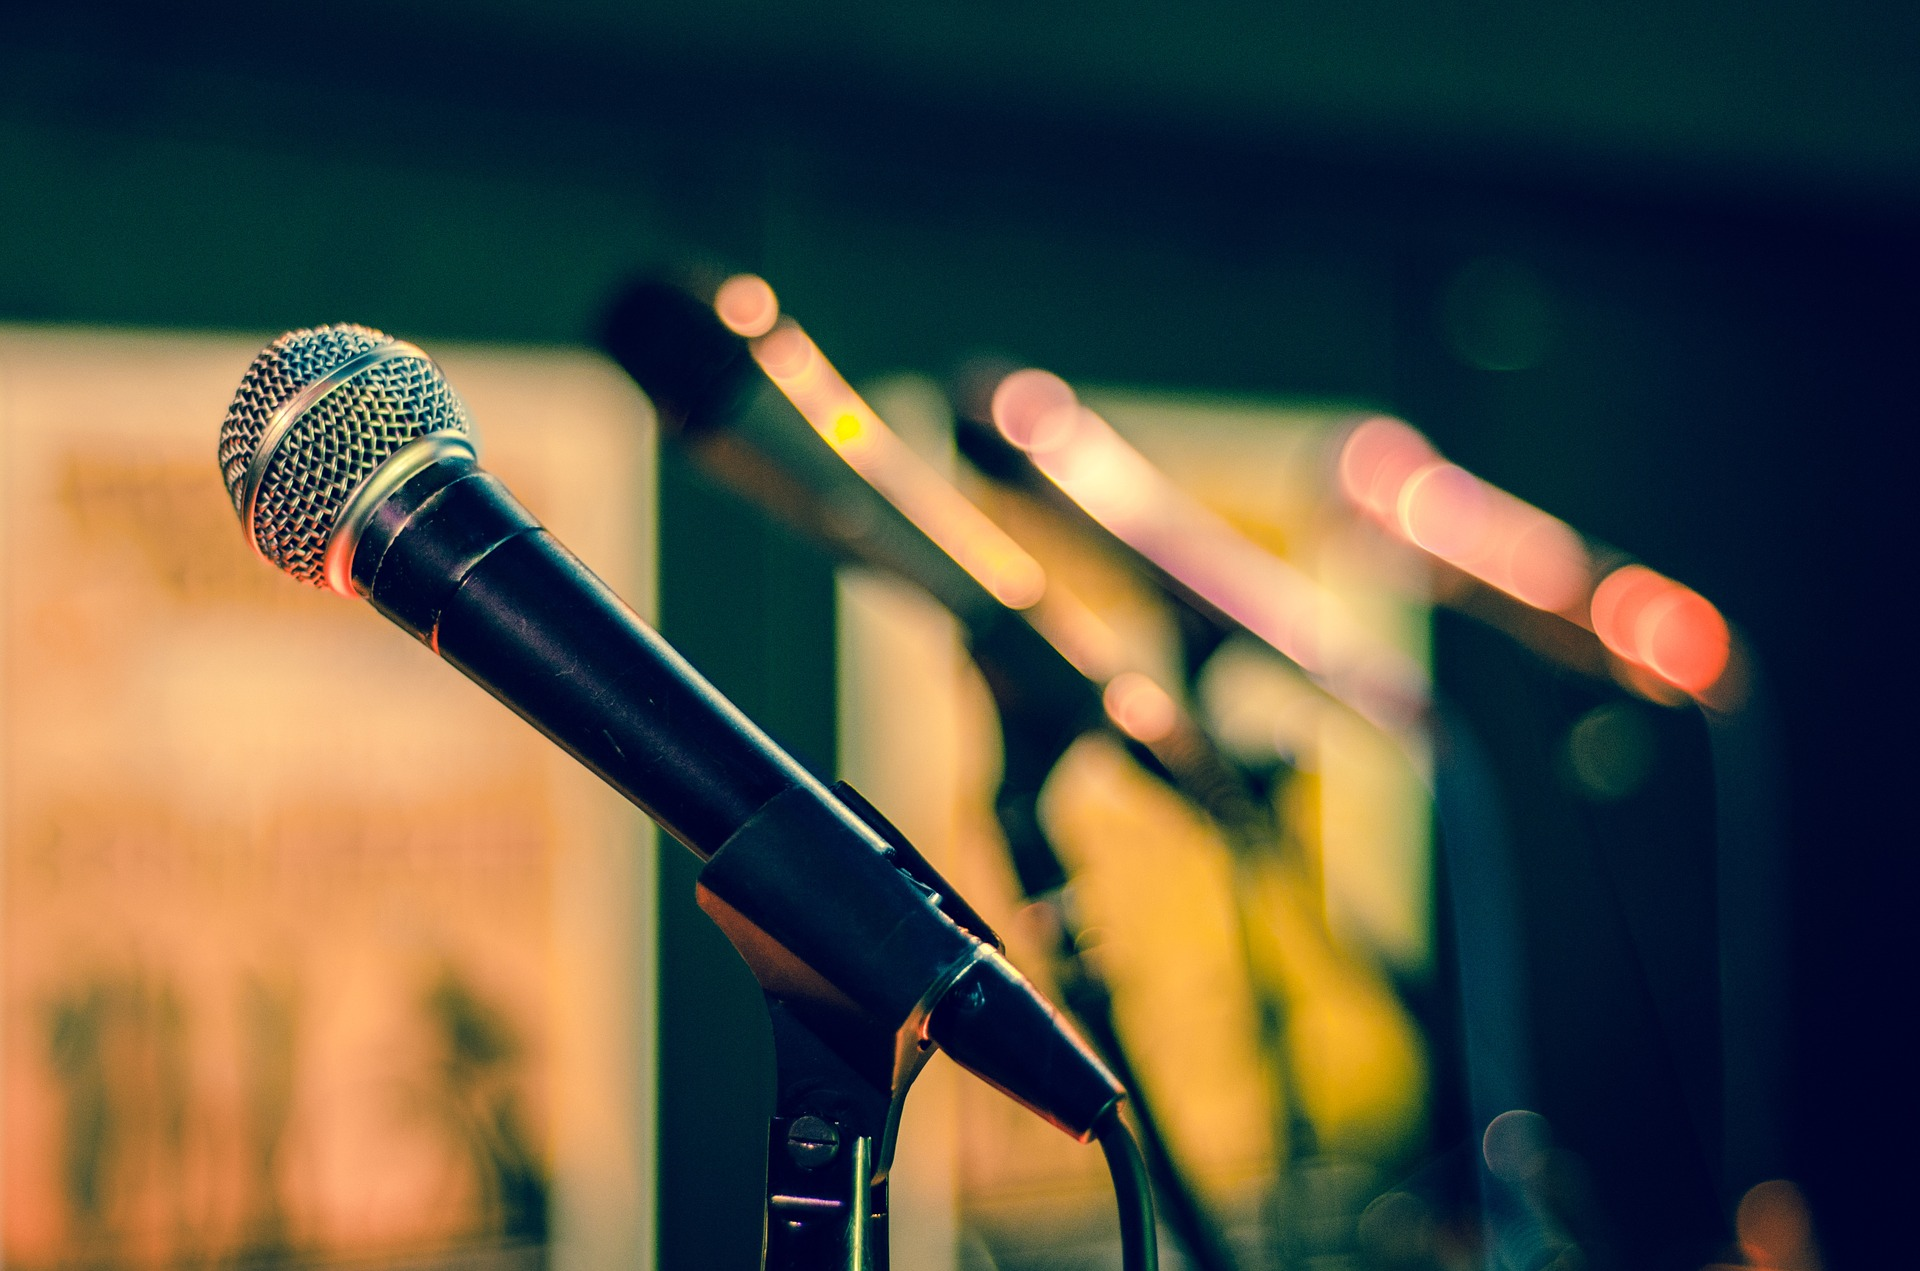 Don't Let Bad Advice Ruin Your Presentation